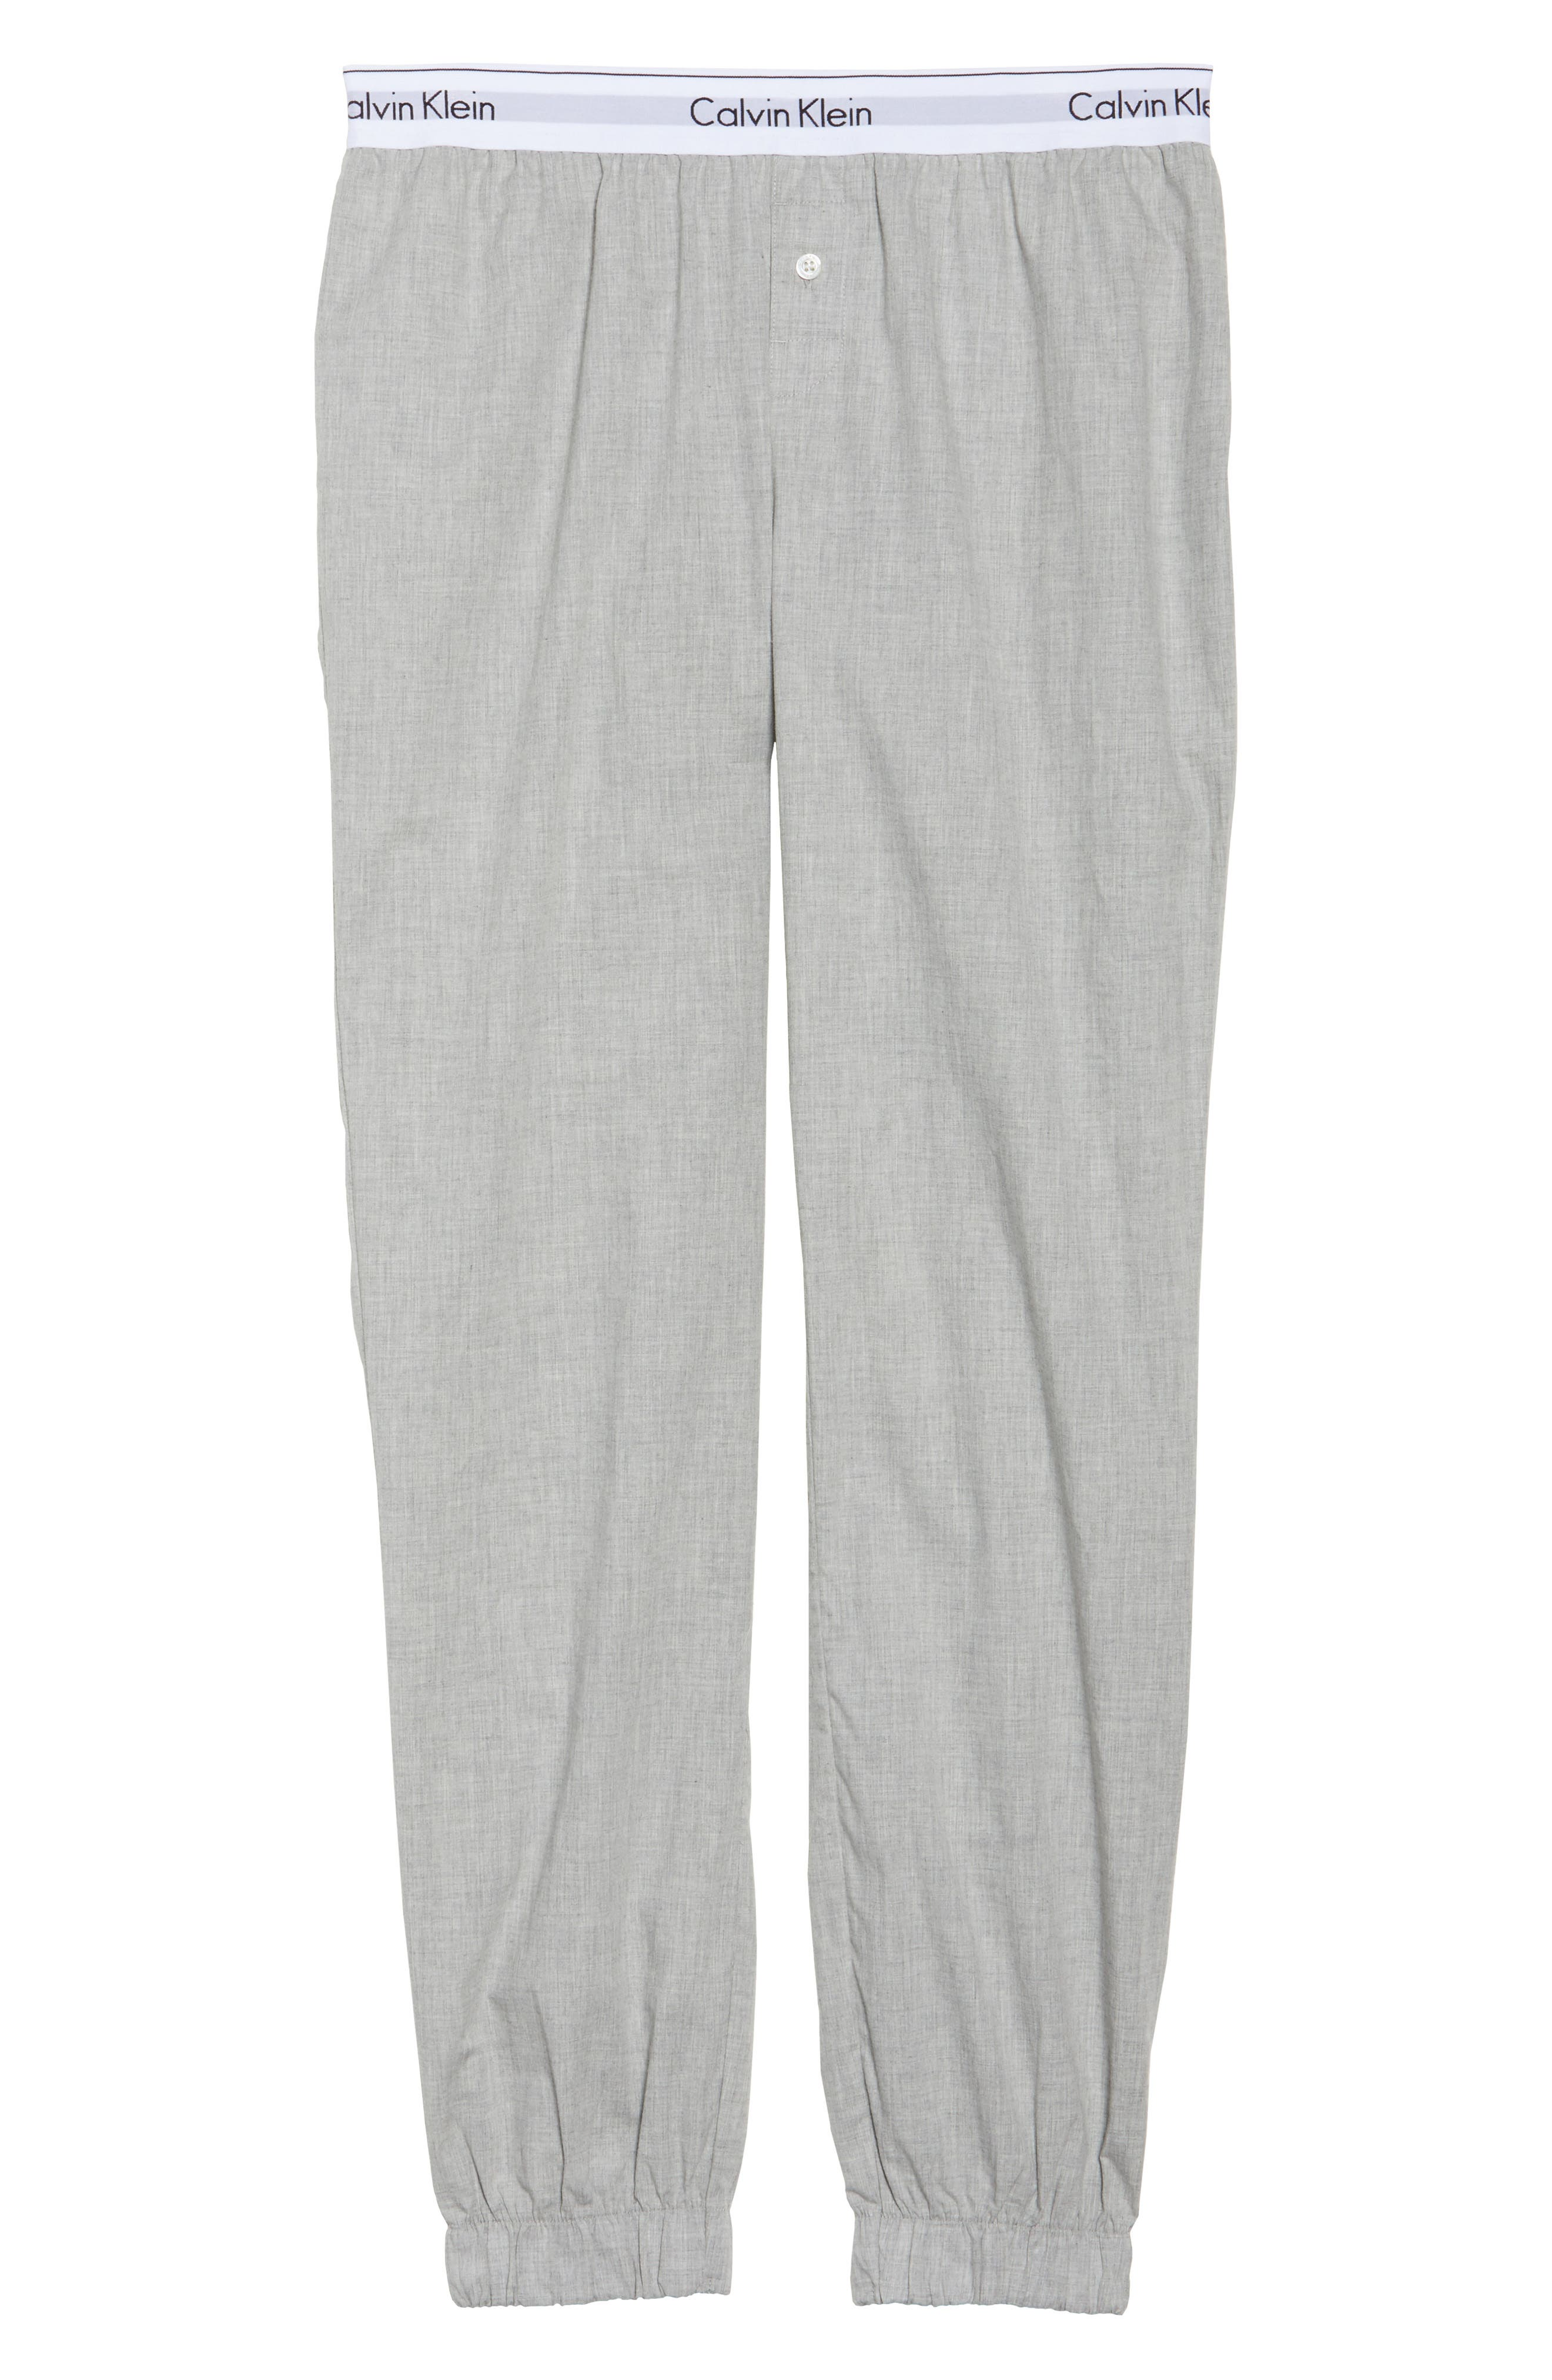 Lounge Jogger Pants,                             Alternate thumbnail 12, color,